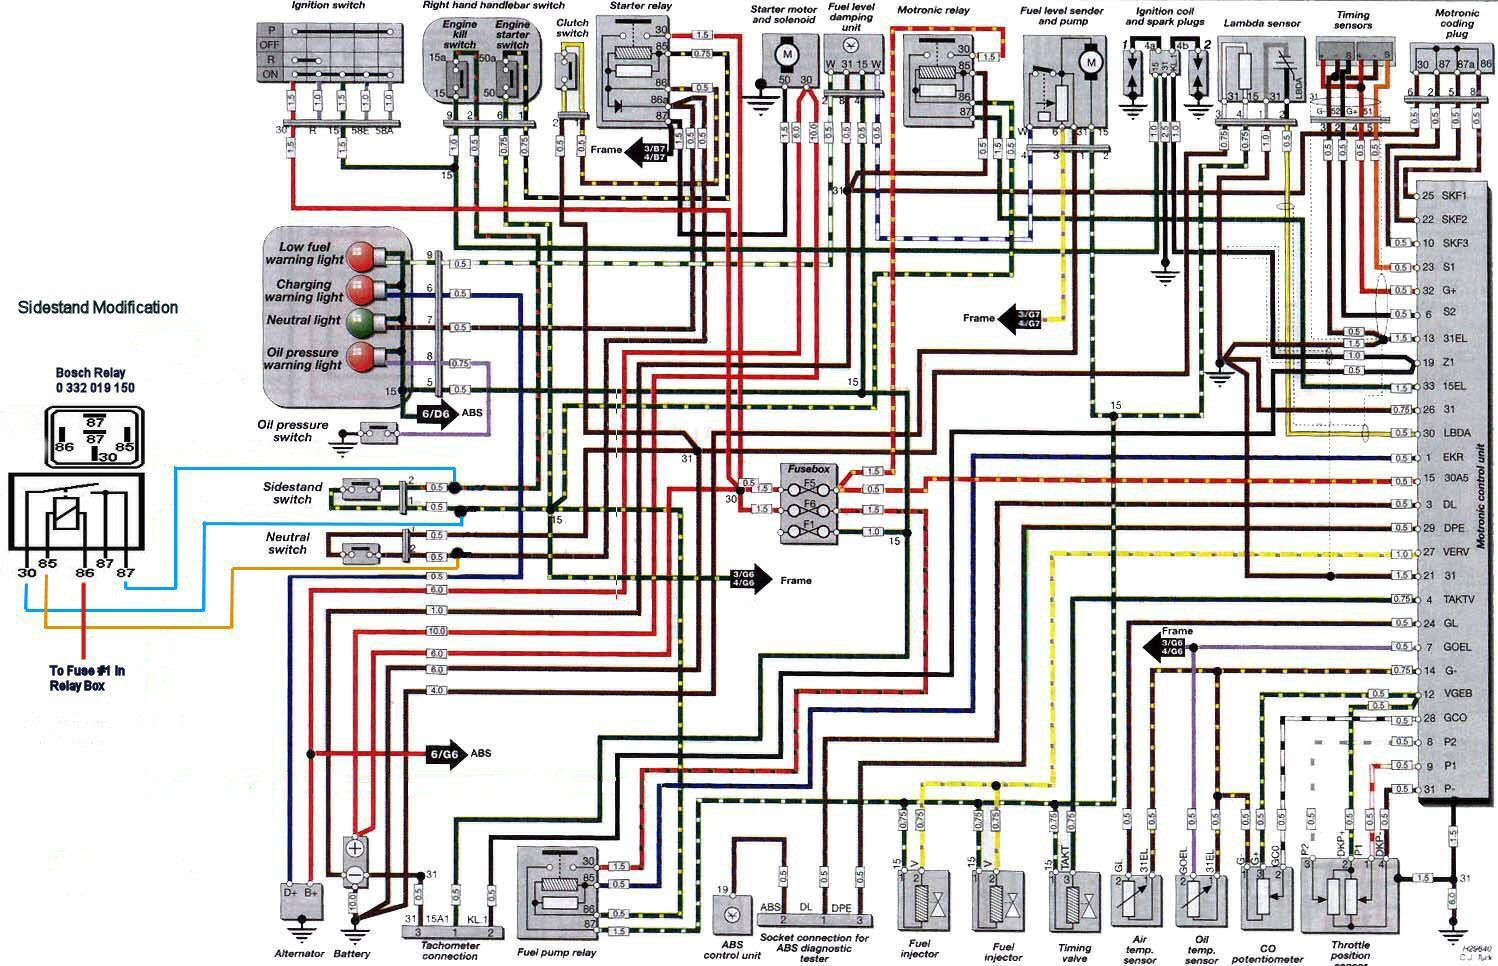 r1150rt fuse box wiring diagram gor1150rt fuse box wiring diagram bmw r1150rt wiring diagram wiring librarybmw [ 1498 x 966 Pixel ]